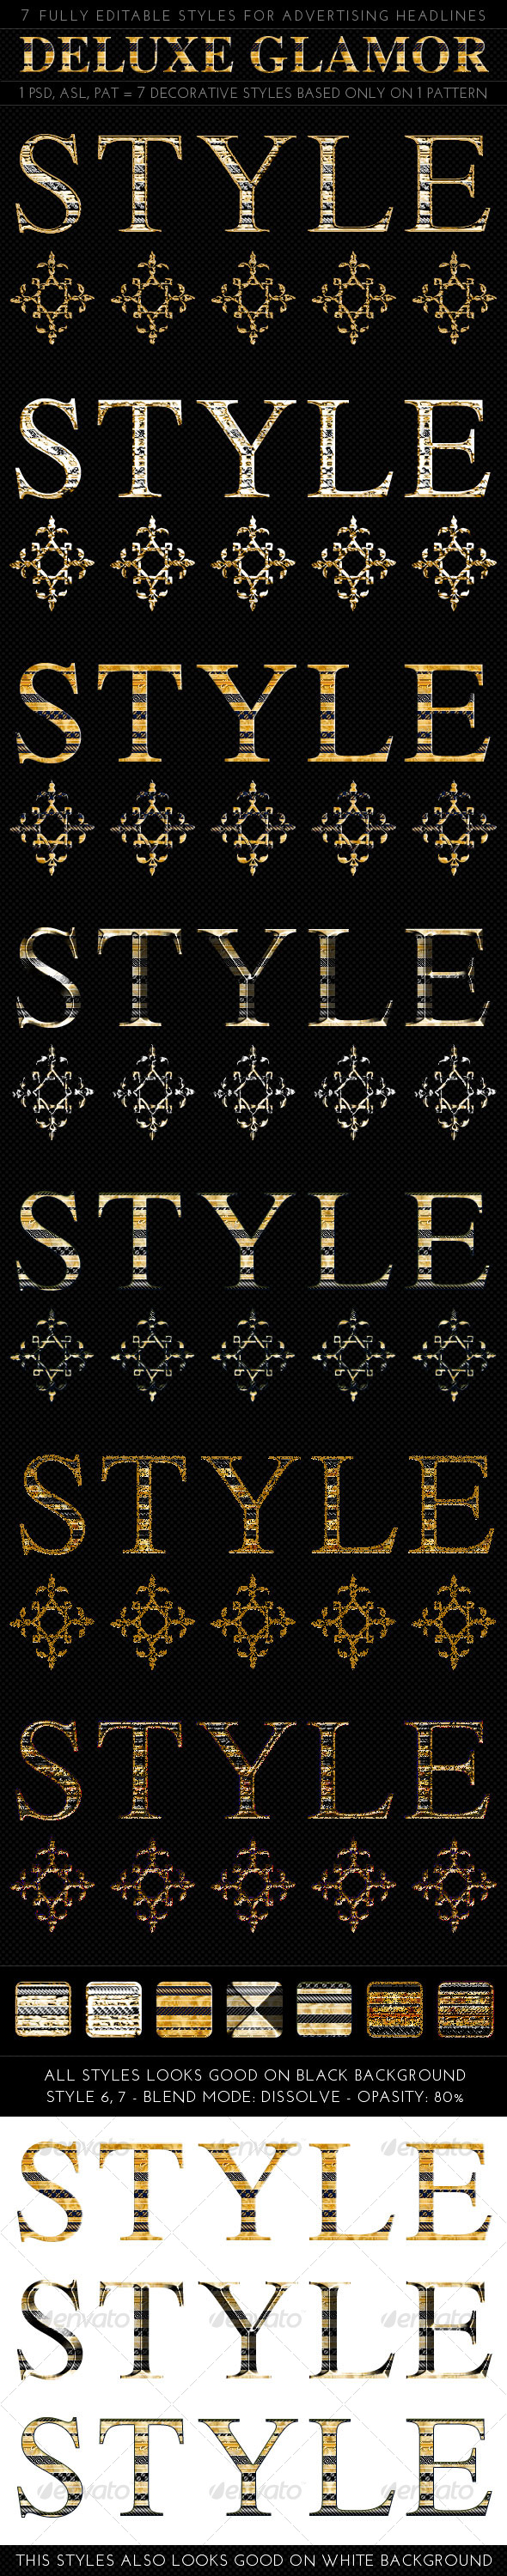 Deluxe Glamor Styles - Text Effects Styles